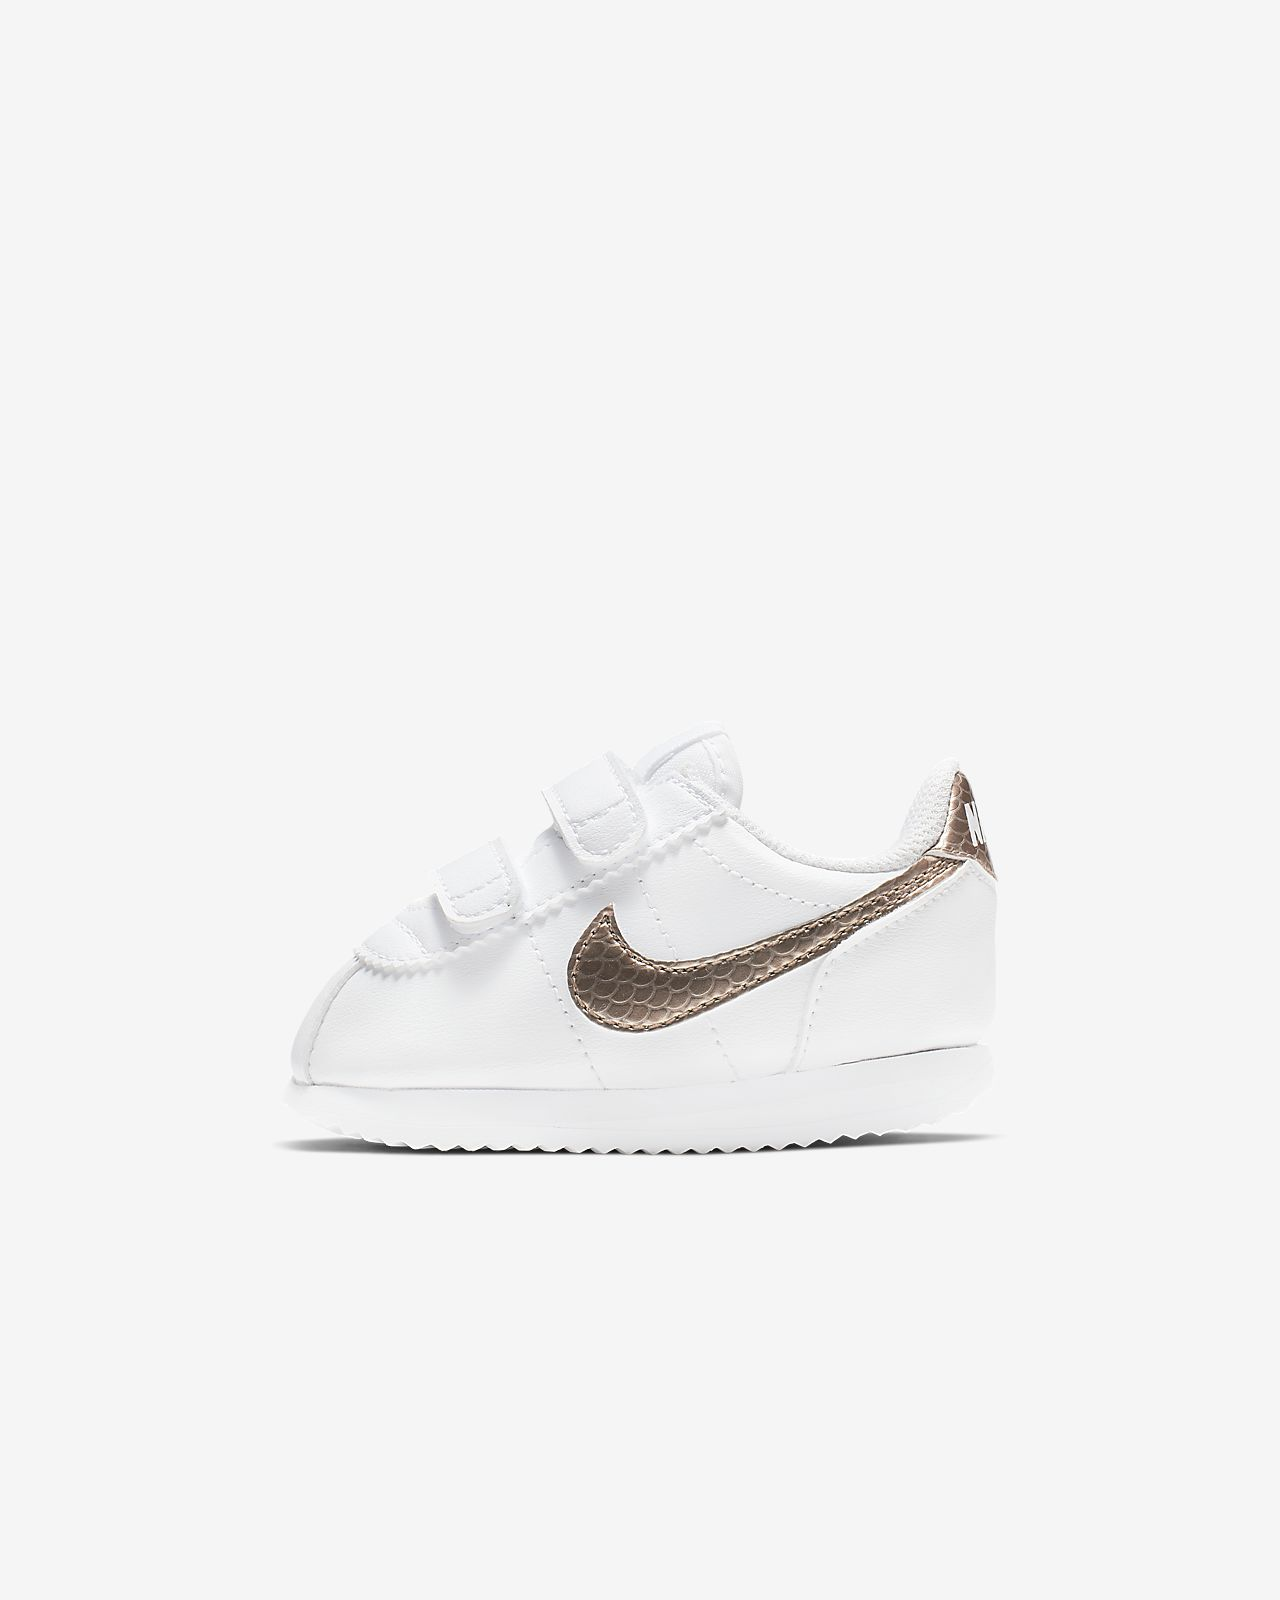 los angeles f6c8f 41f5d Baby and Toddler Shoe. Nike Cortez Basic SL EP